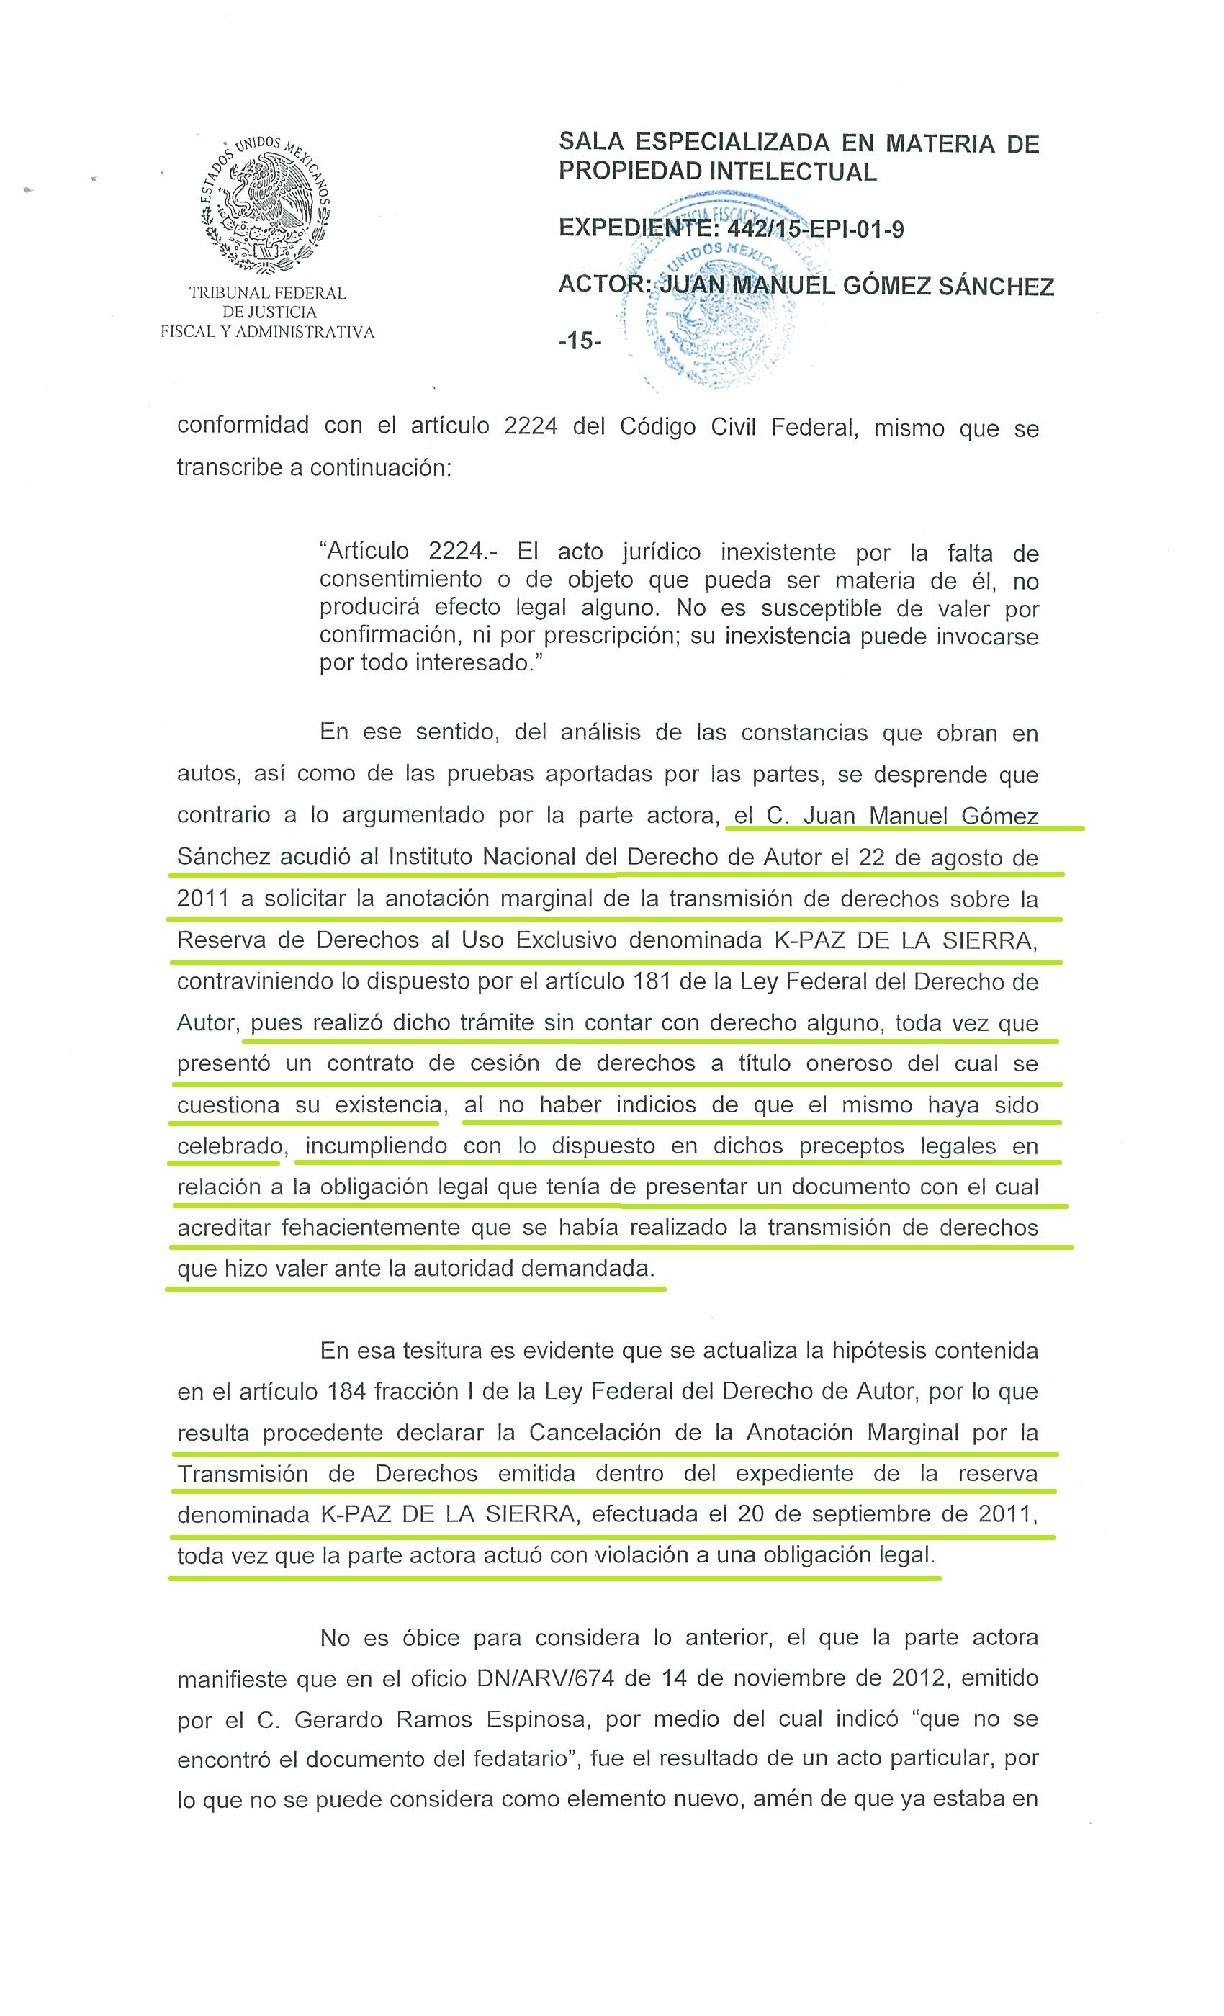 Documento Fin De Demanda.